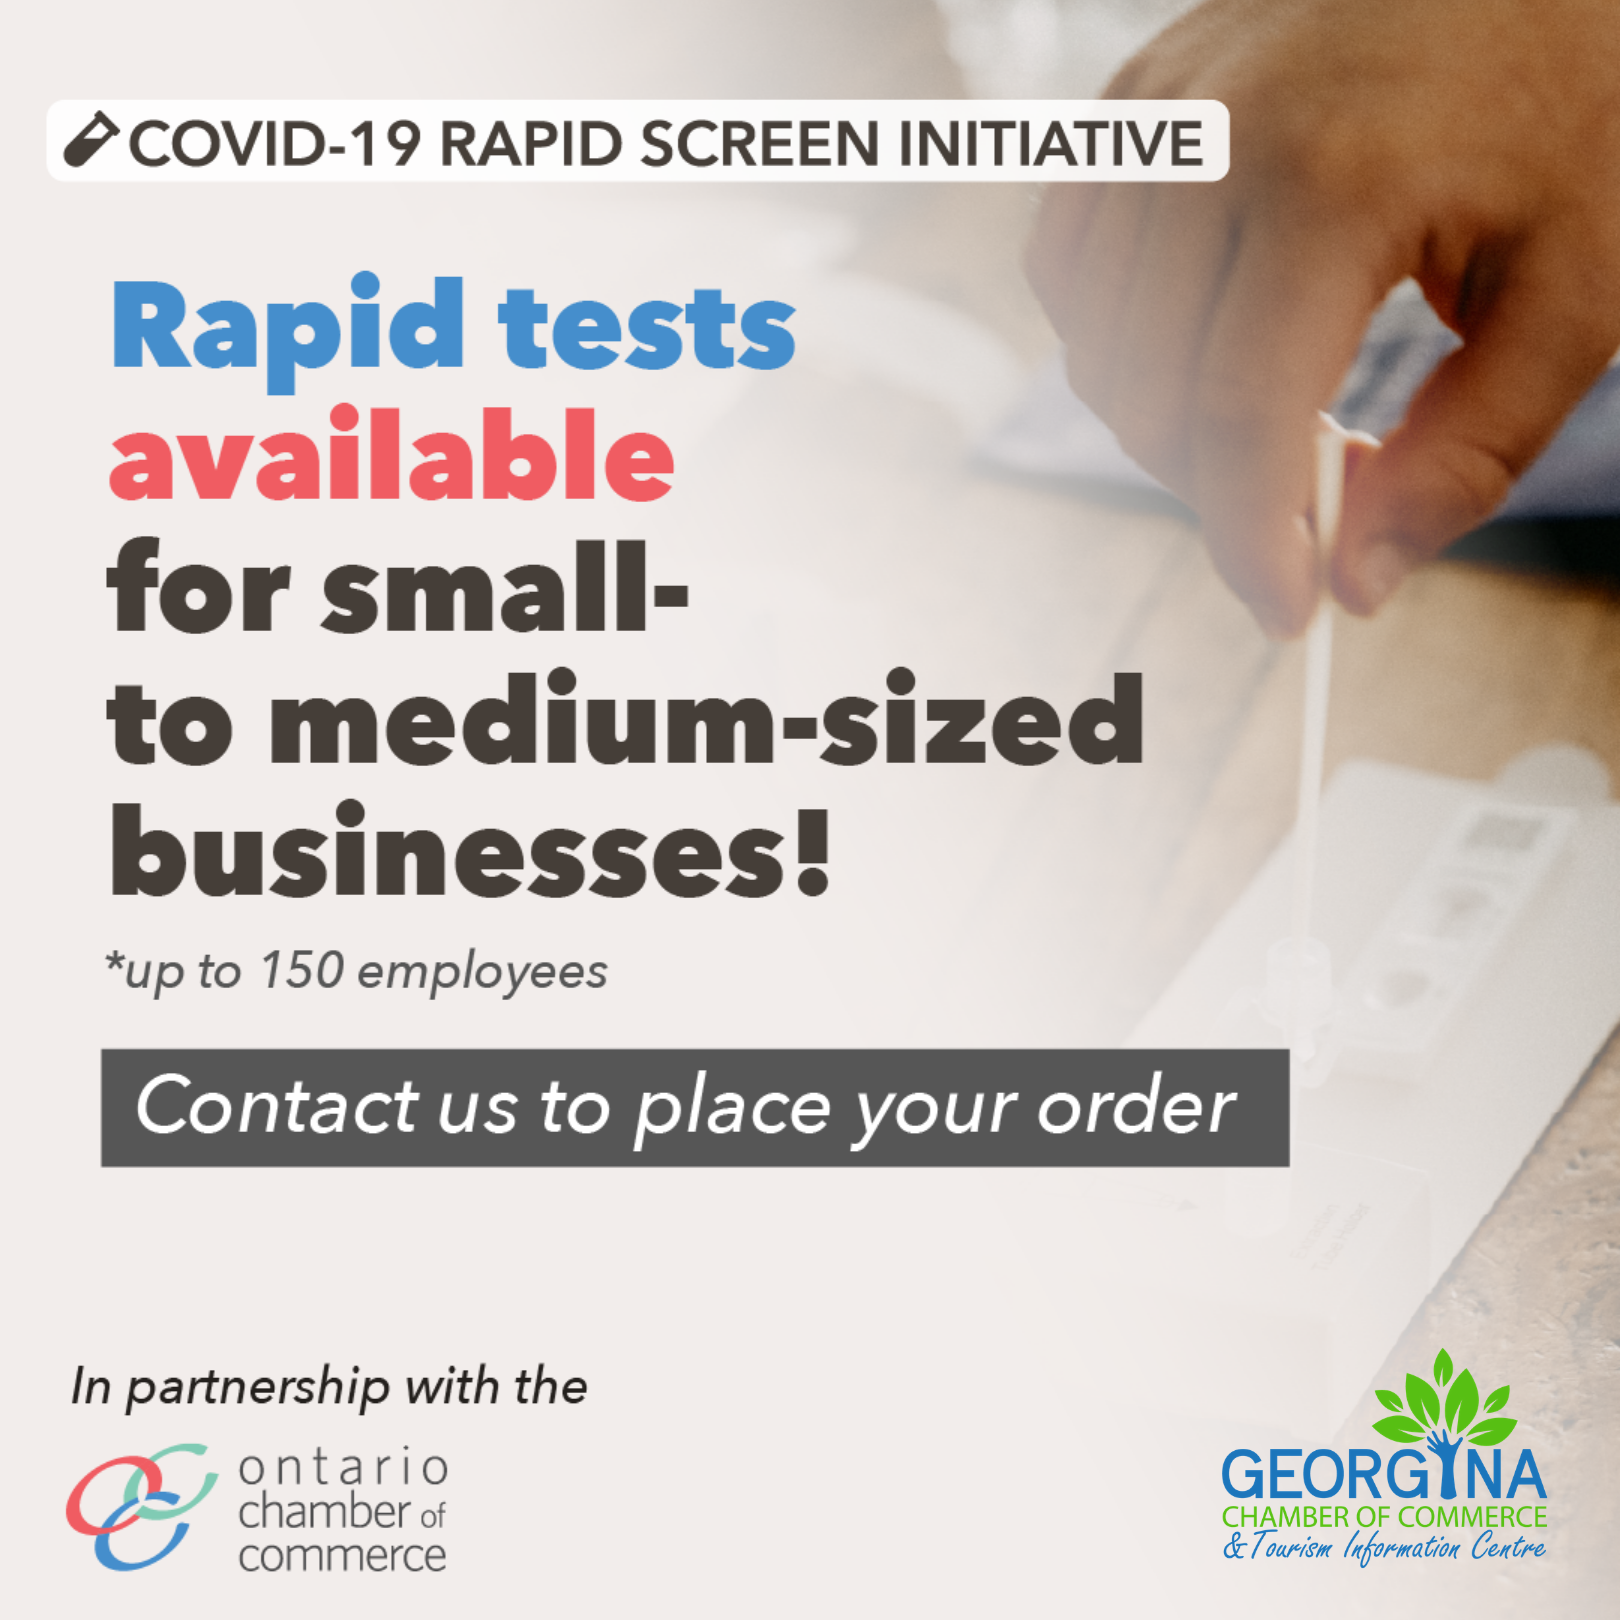 Rapid Testing Available for All Small and Medium Sized Businesses